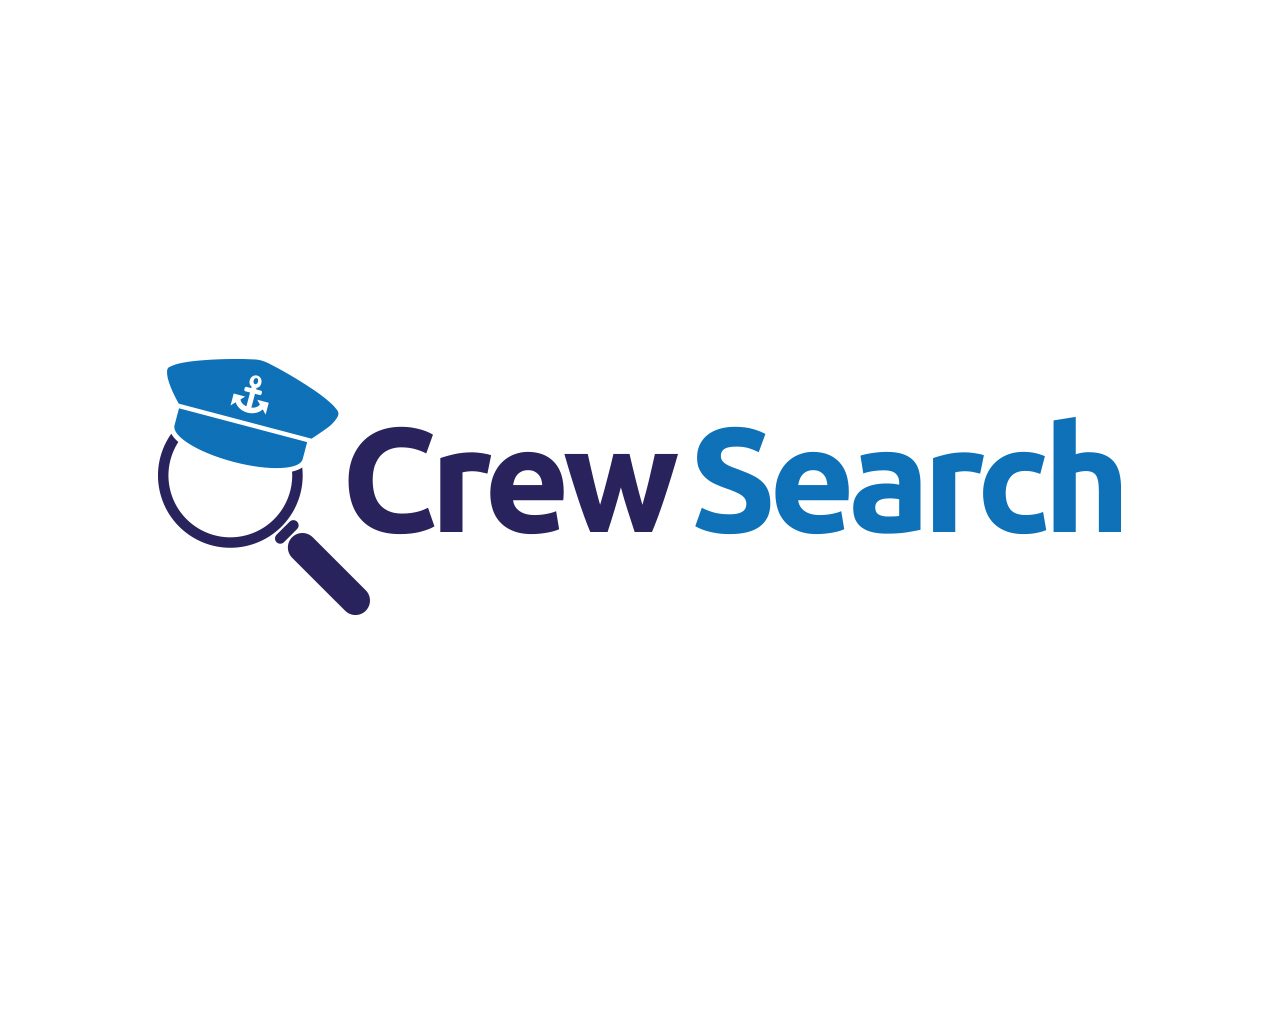 logo crewsearch